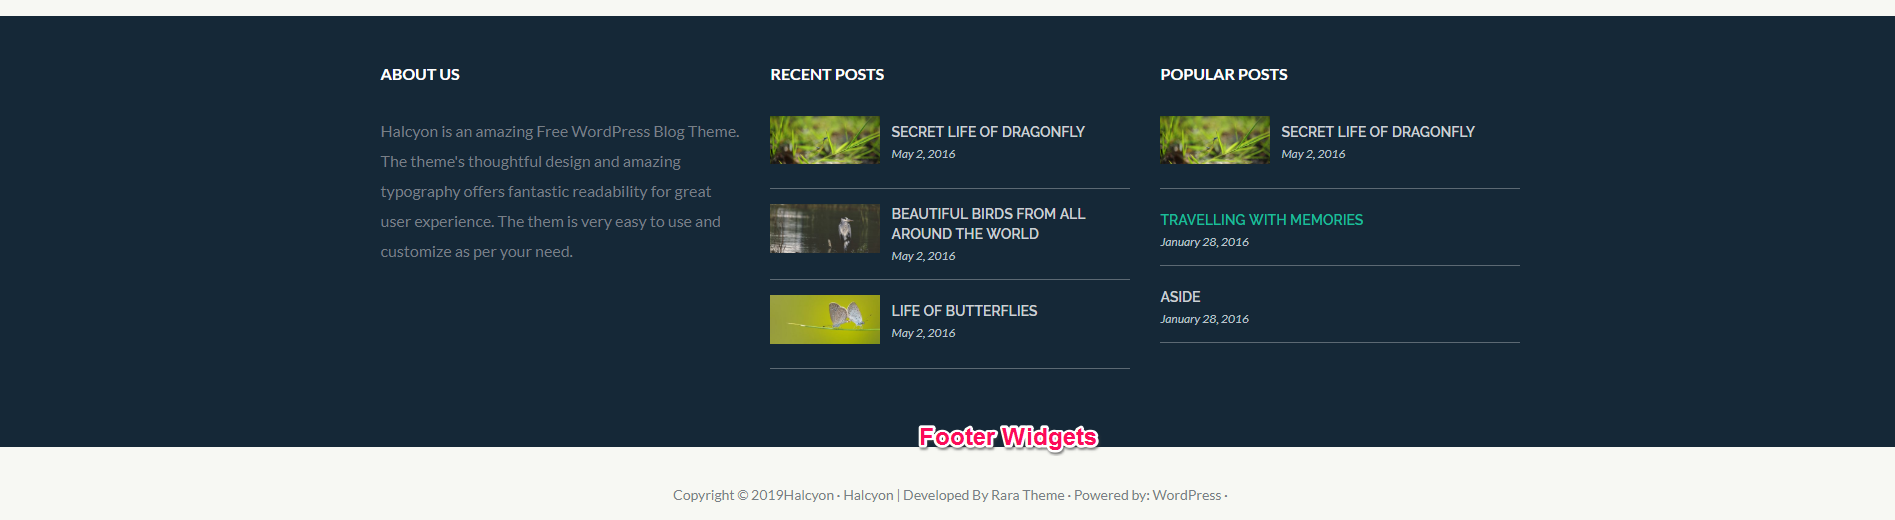 footer widgets for halcyon